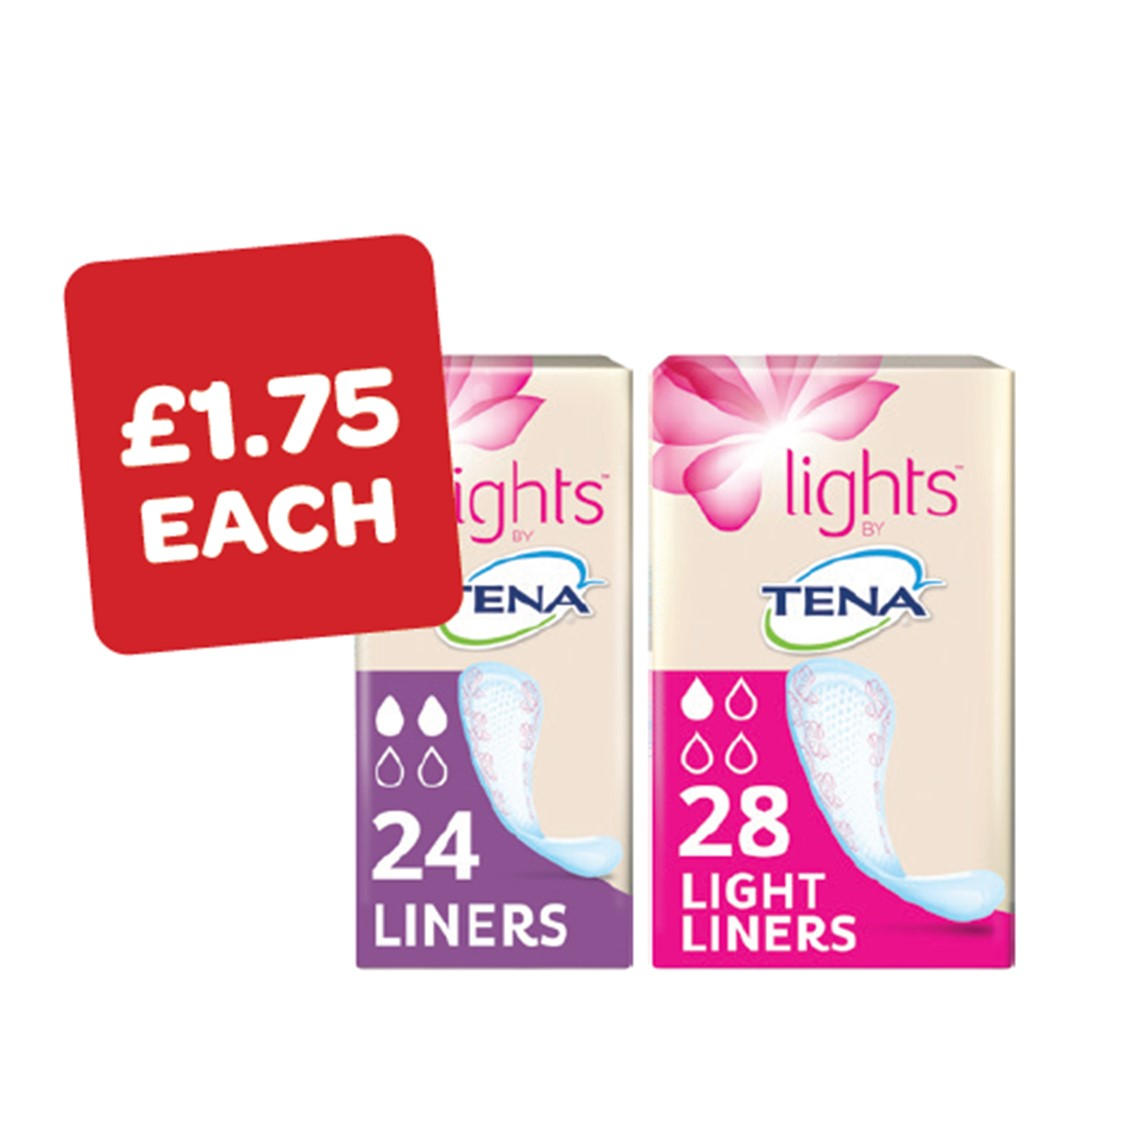 Tena Light Liners